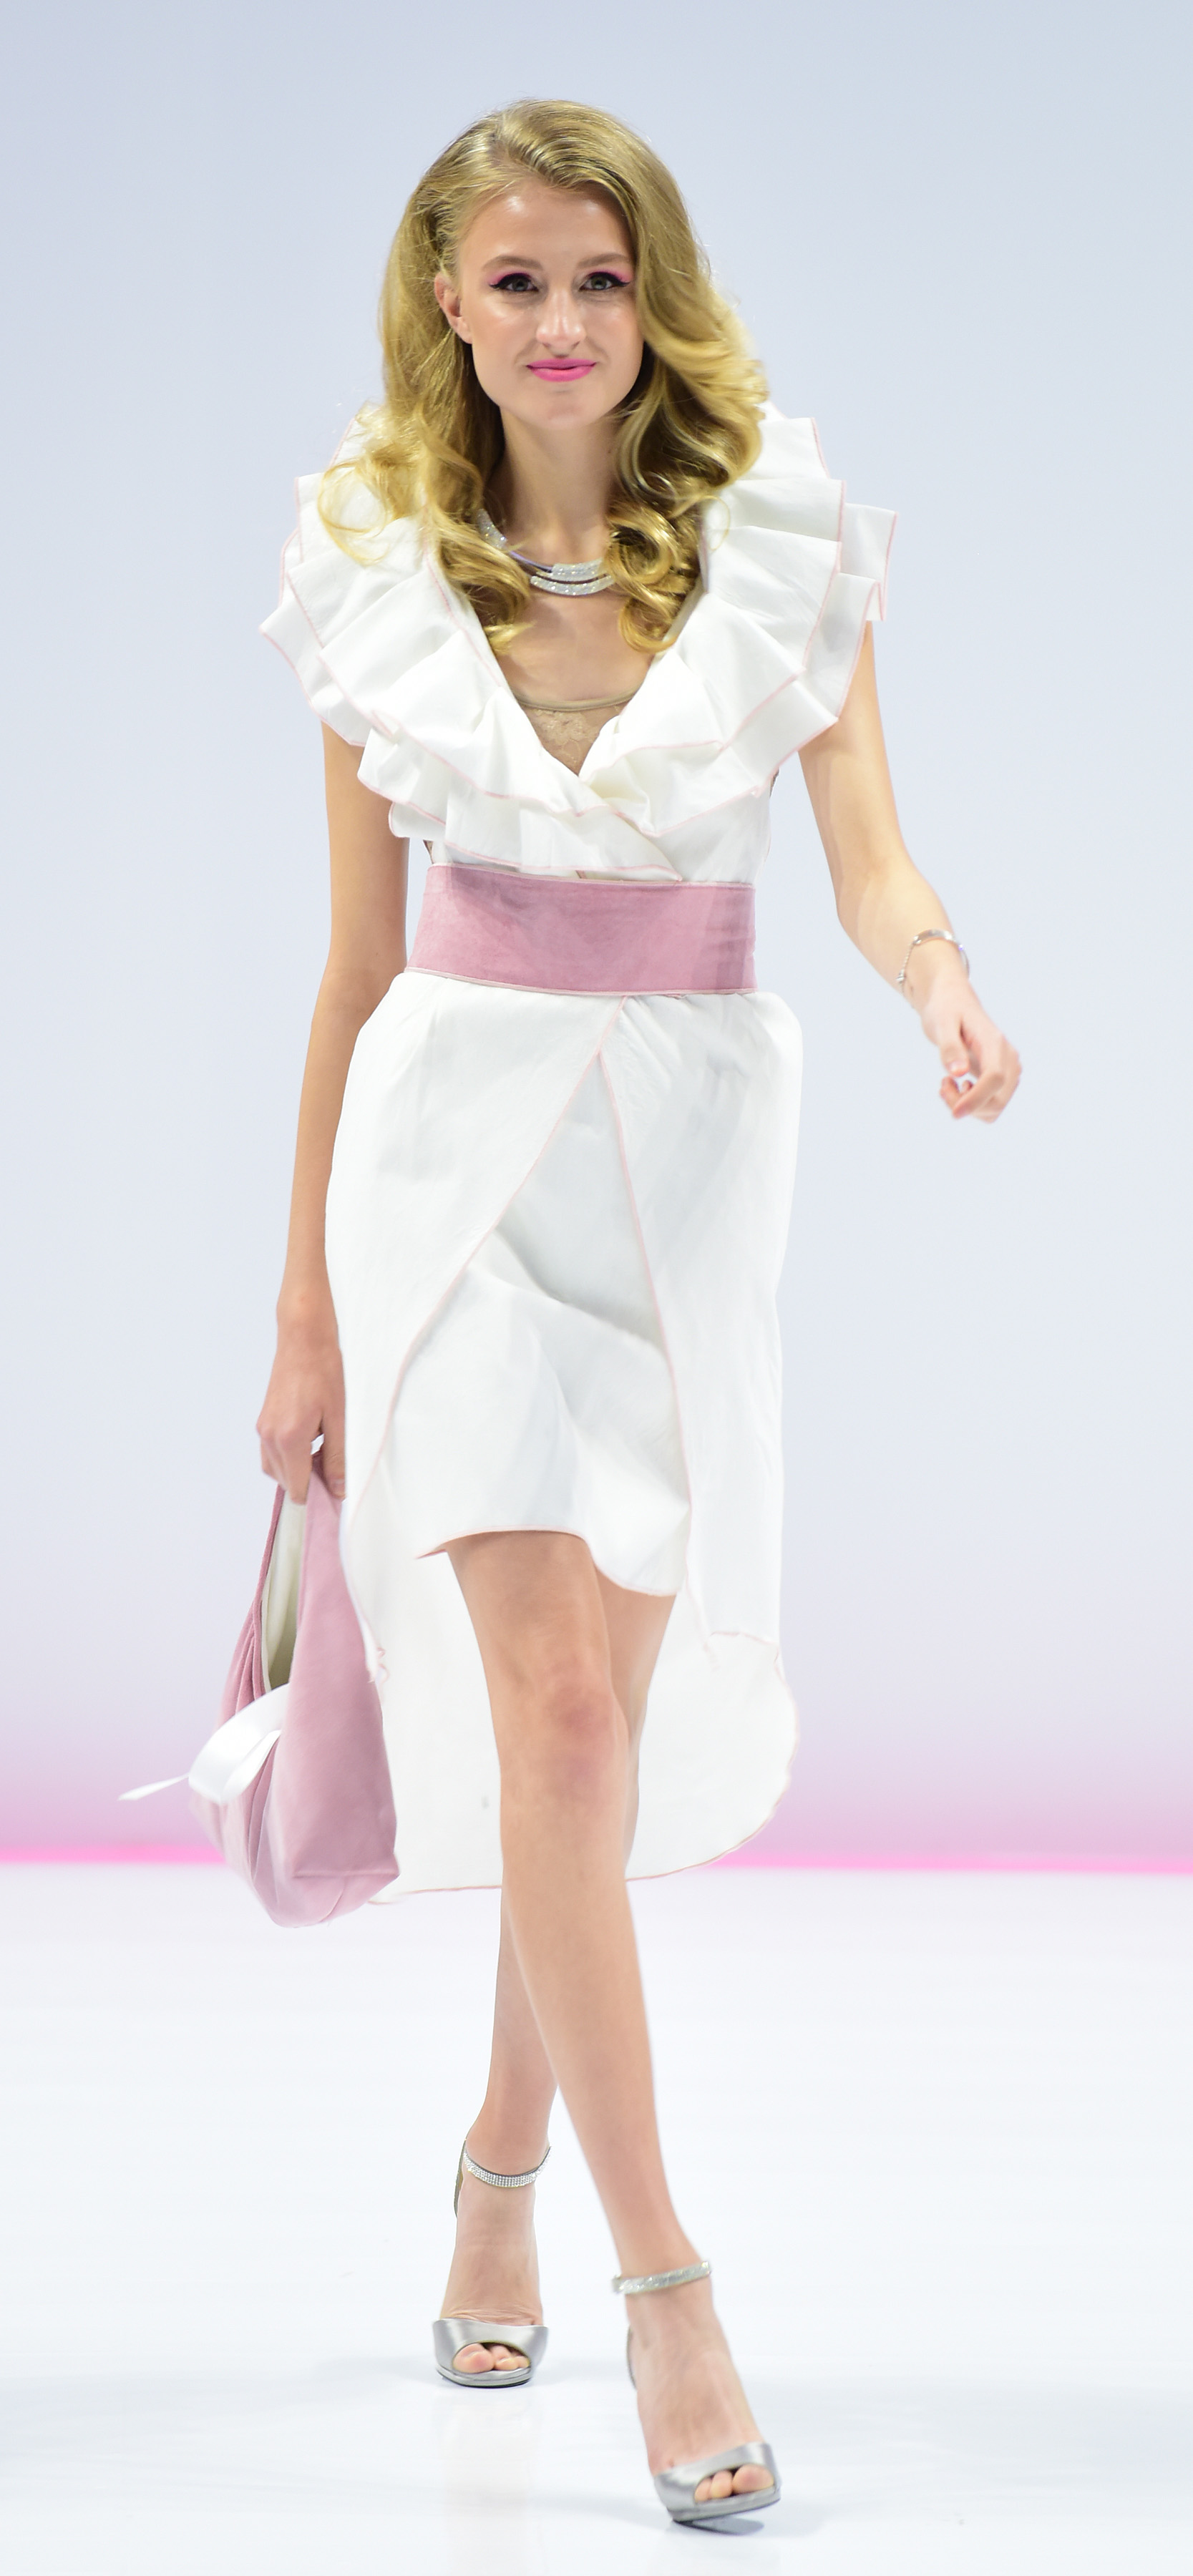 b8be35ecfbfed Lisa Drader-Murphy's cool sleeveless ensemble tucks a short pencil skirt  under a breakaway frock with a dramatically ruffled portrait collar.